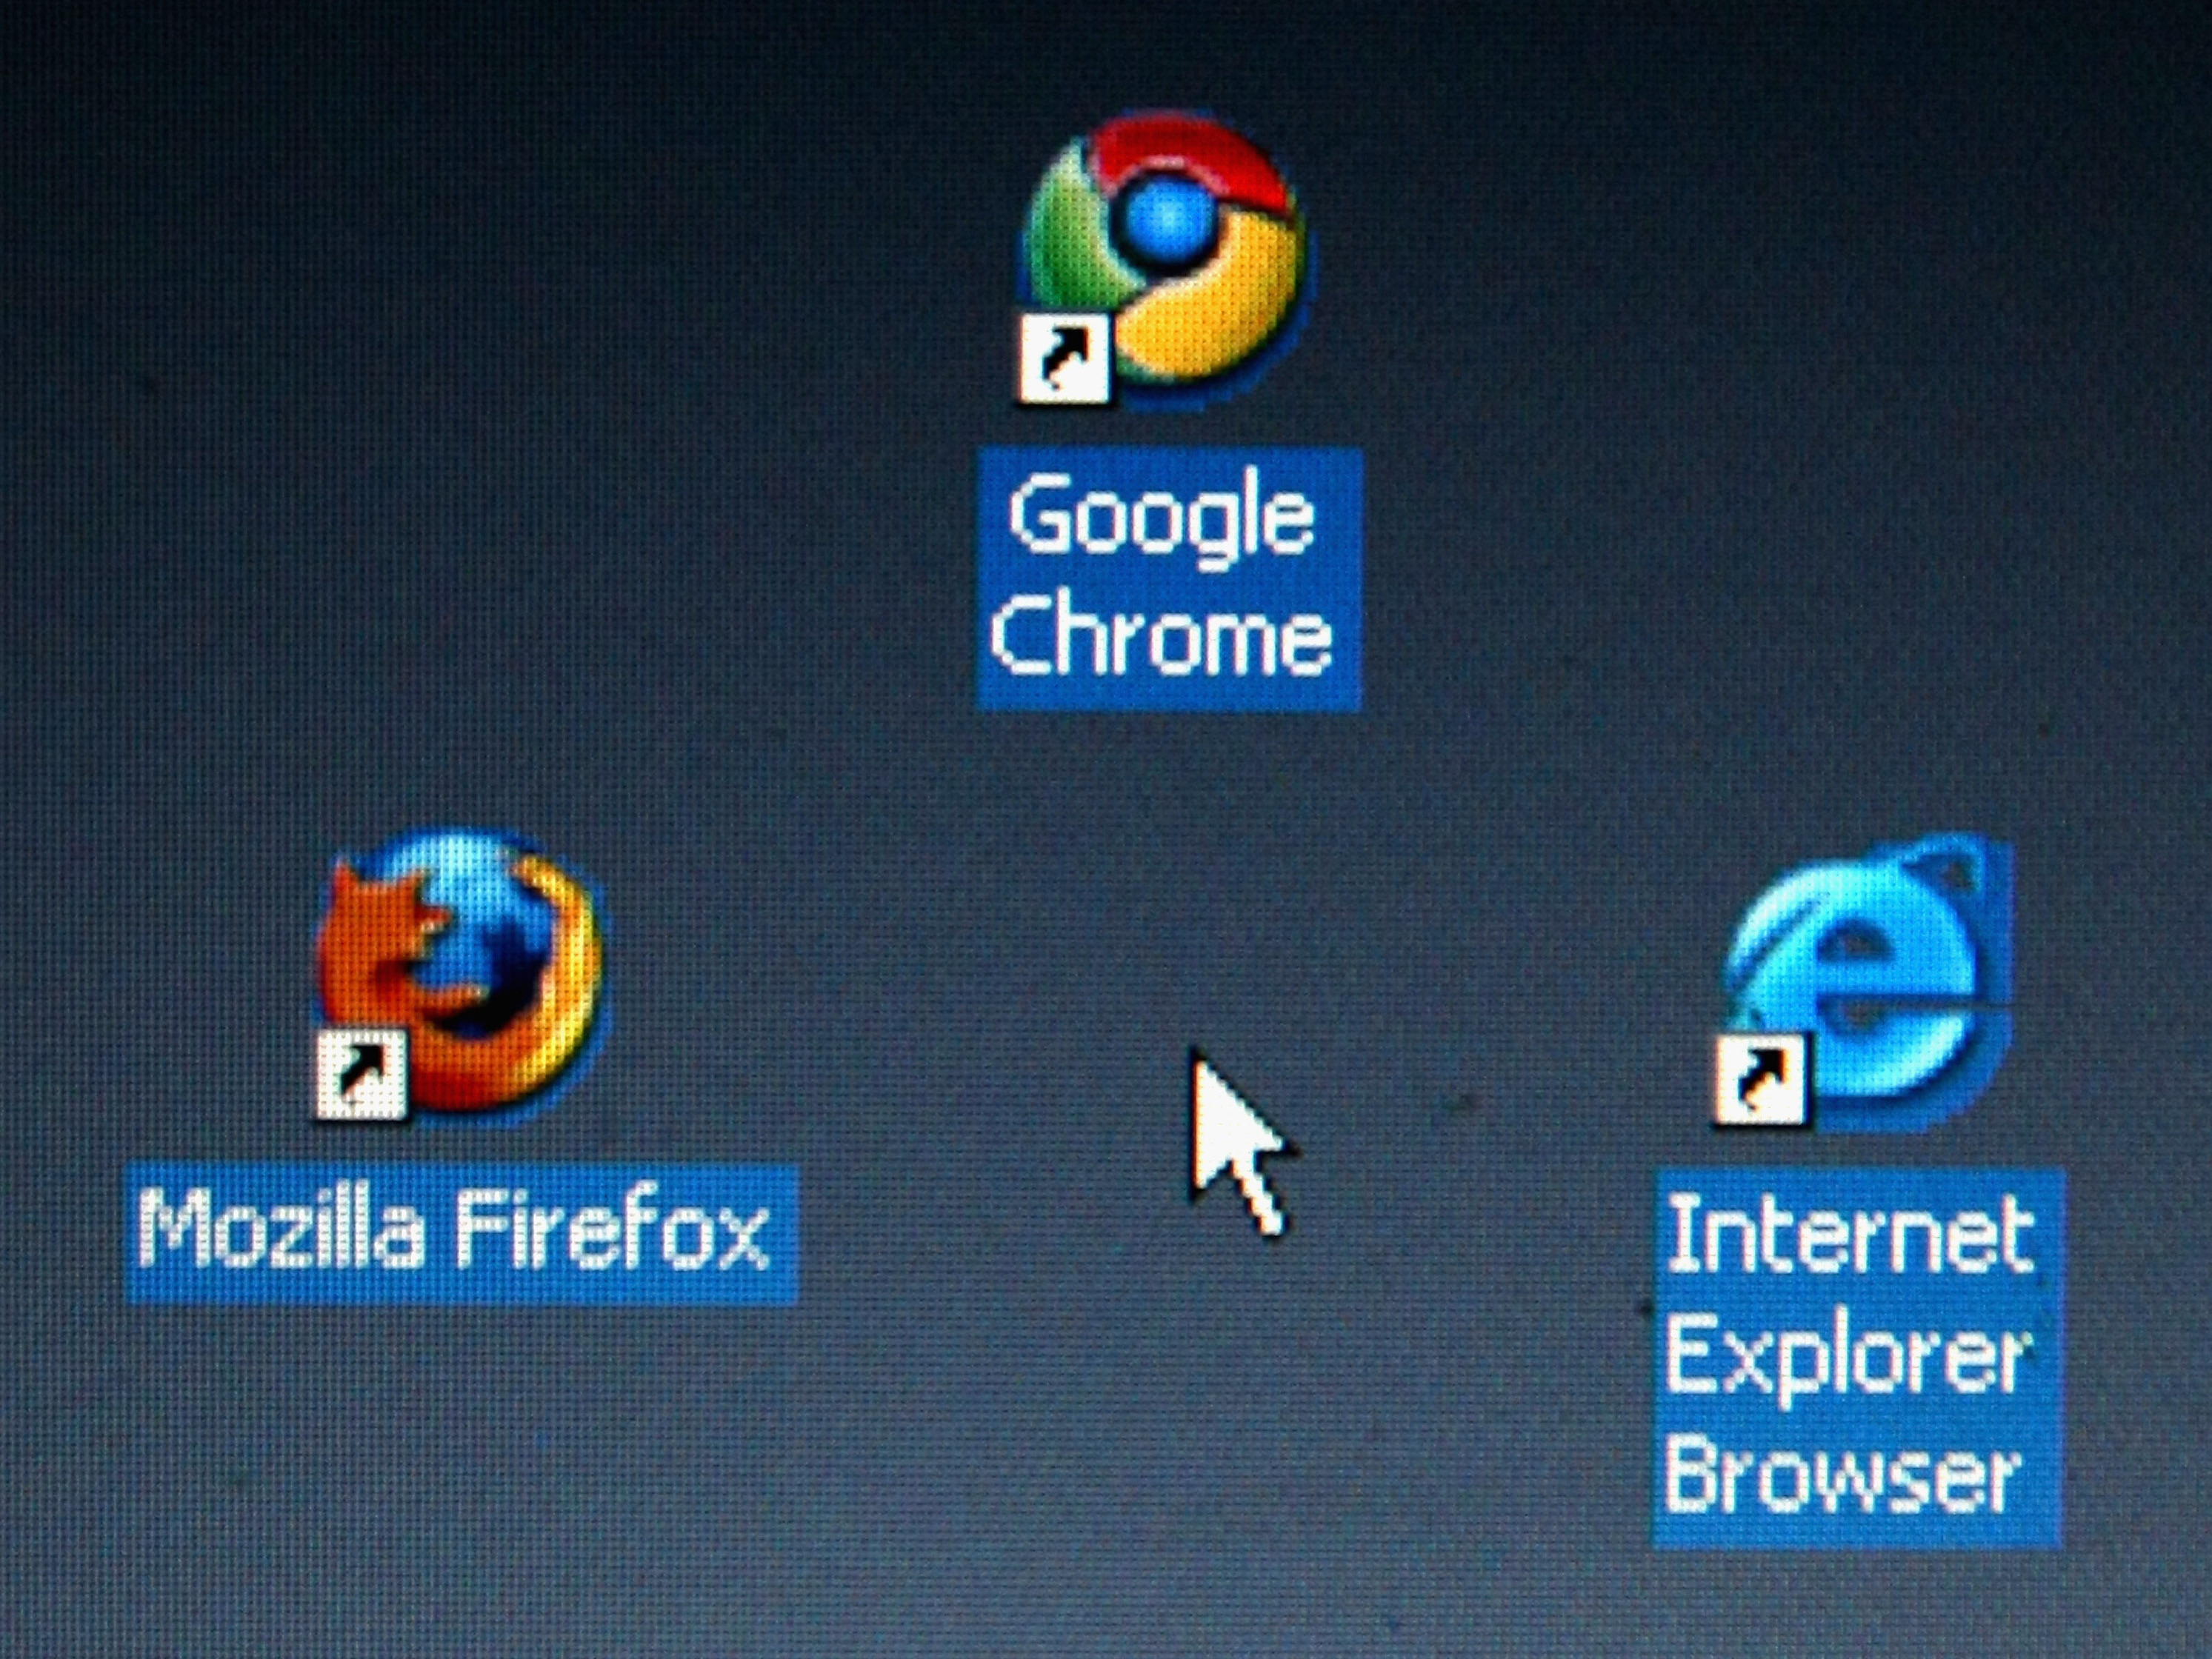 How Do You Spot A Nonconformist? You Can Start With Their Internet Browser